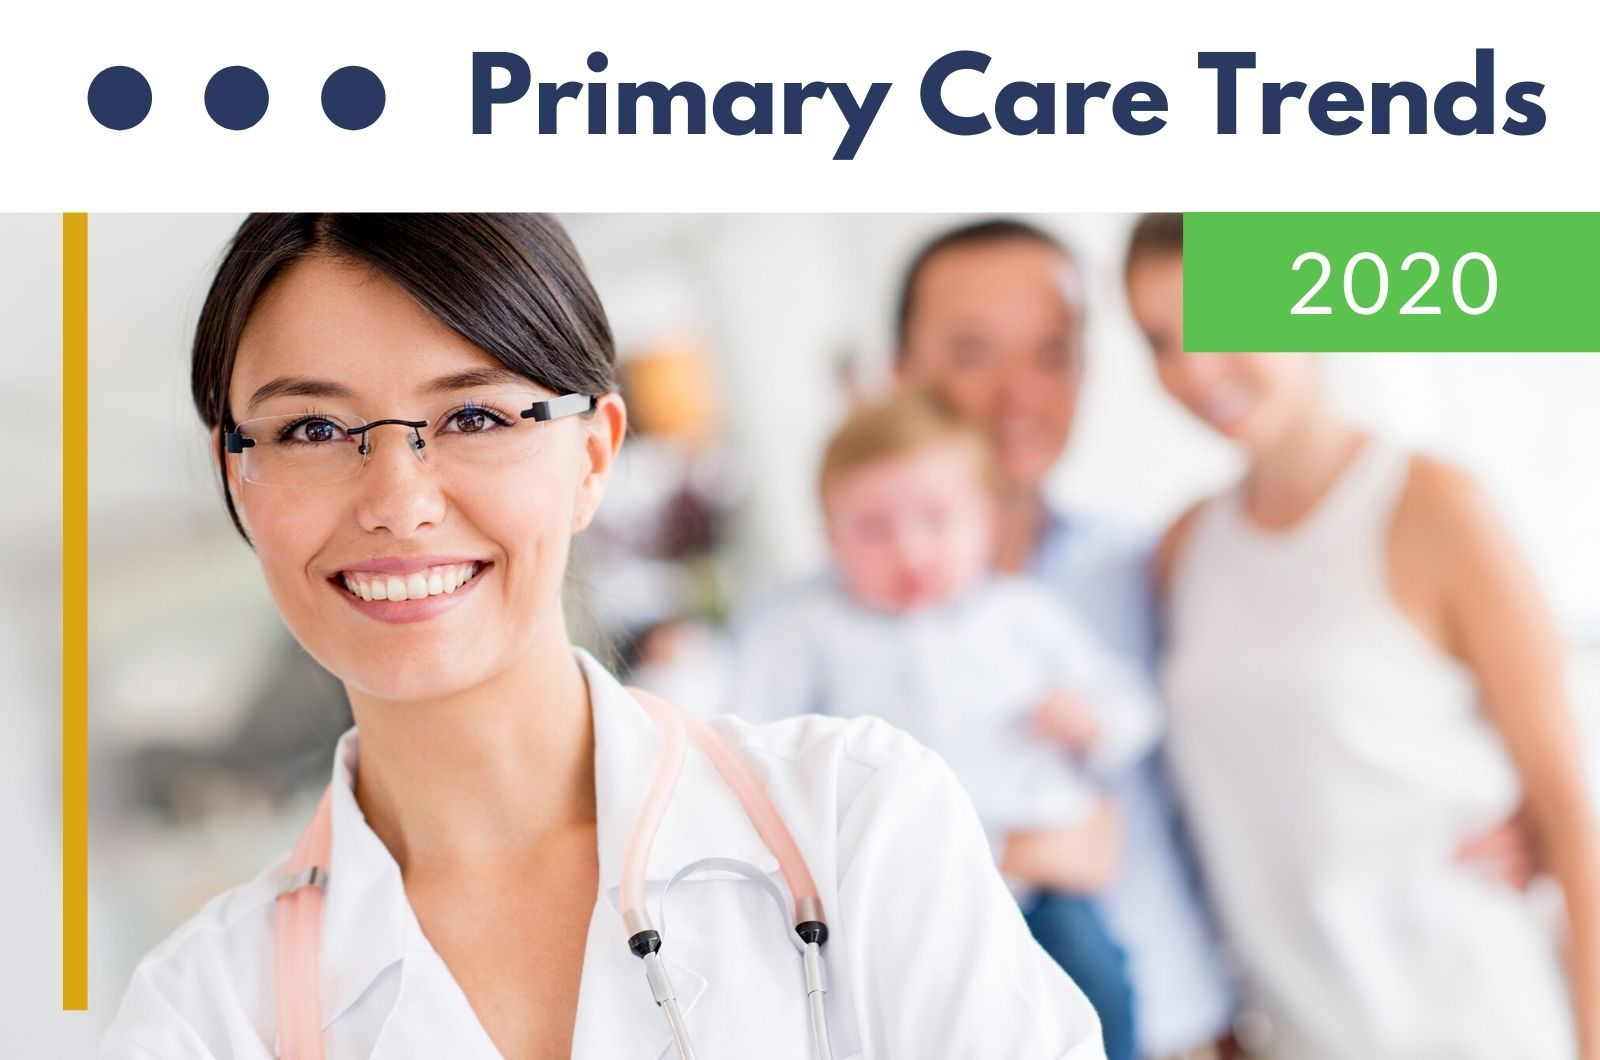 Primary Care Trends